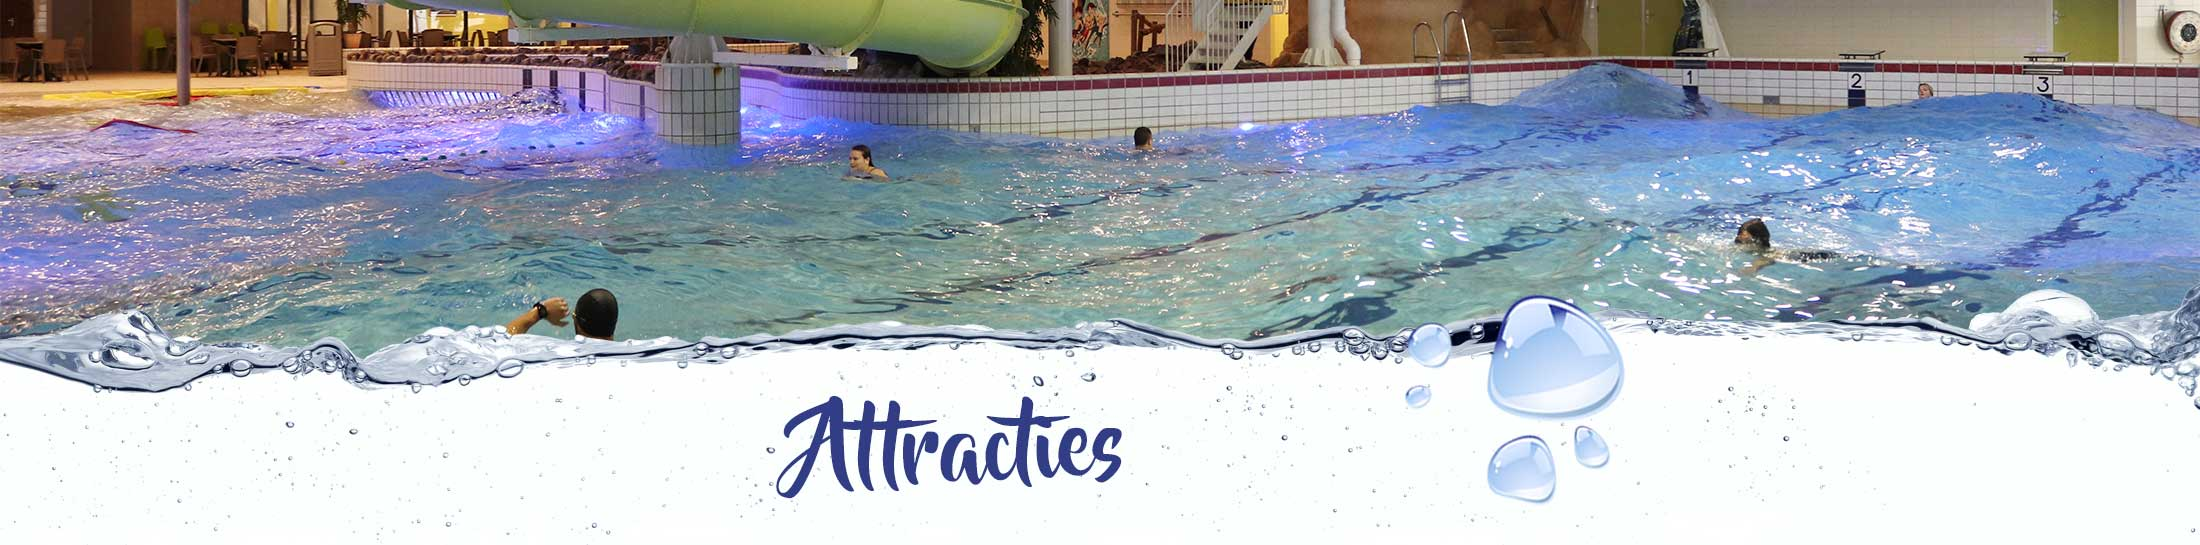 Attracties Swimfun Joure